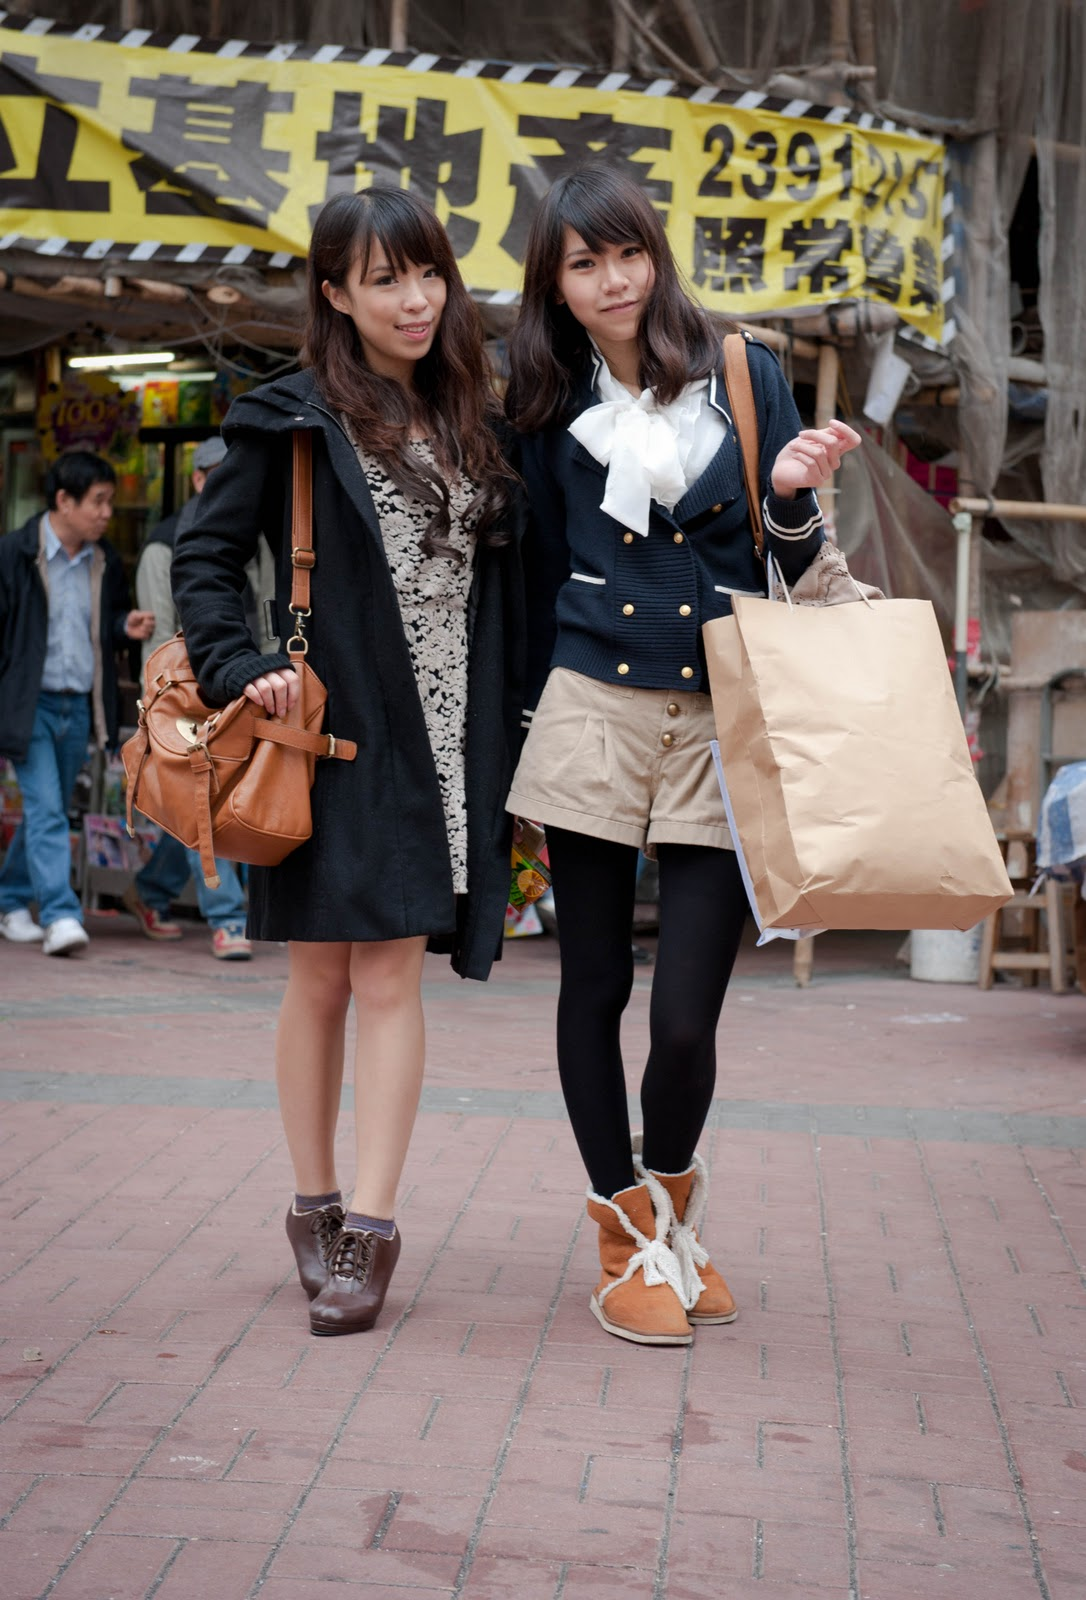 Spy fashion hong kong 5 times Jackie ditched heels for beautiful sneaker looks - Fashion